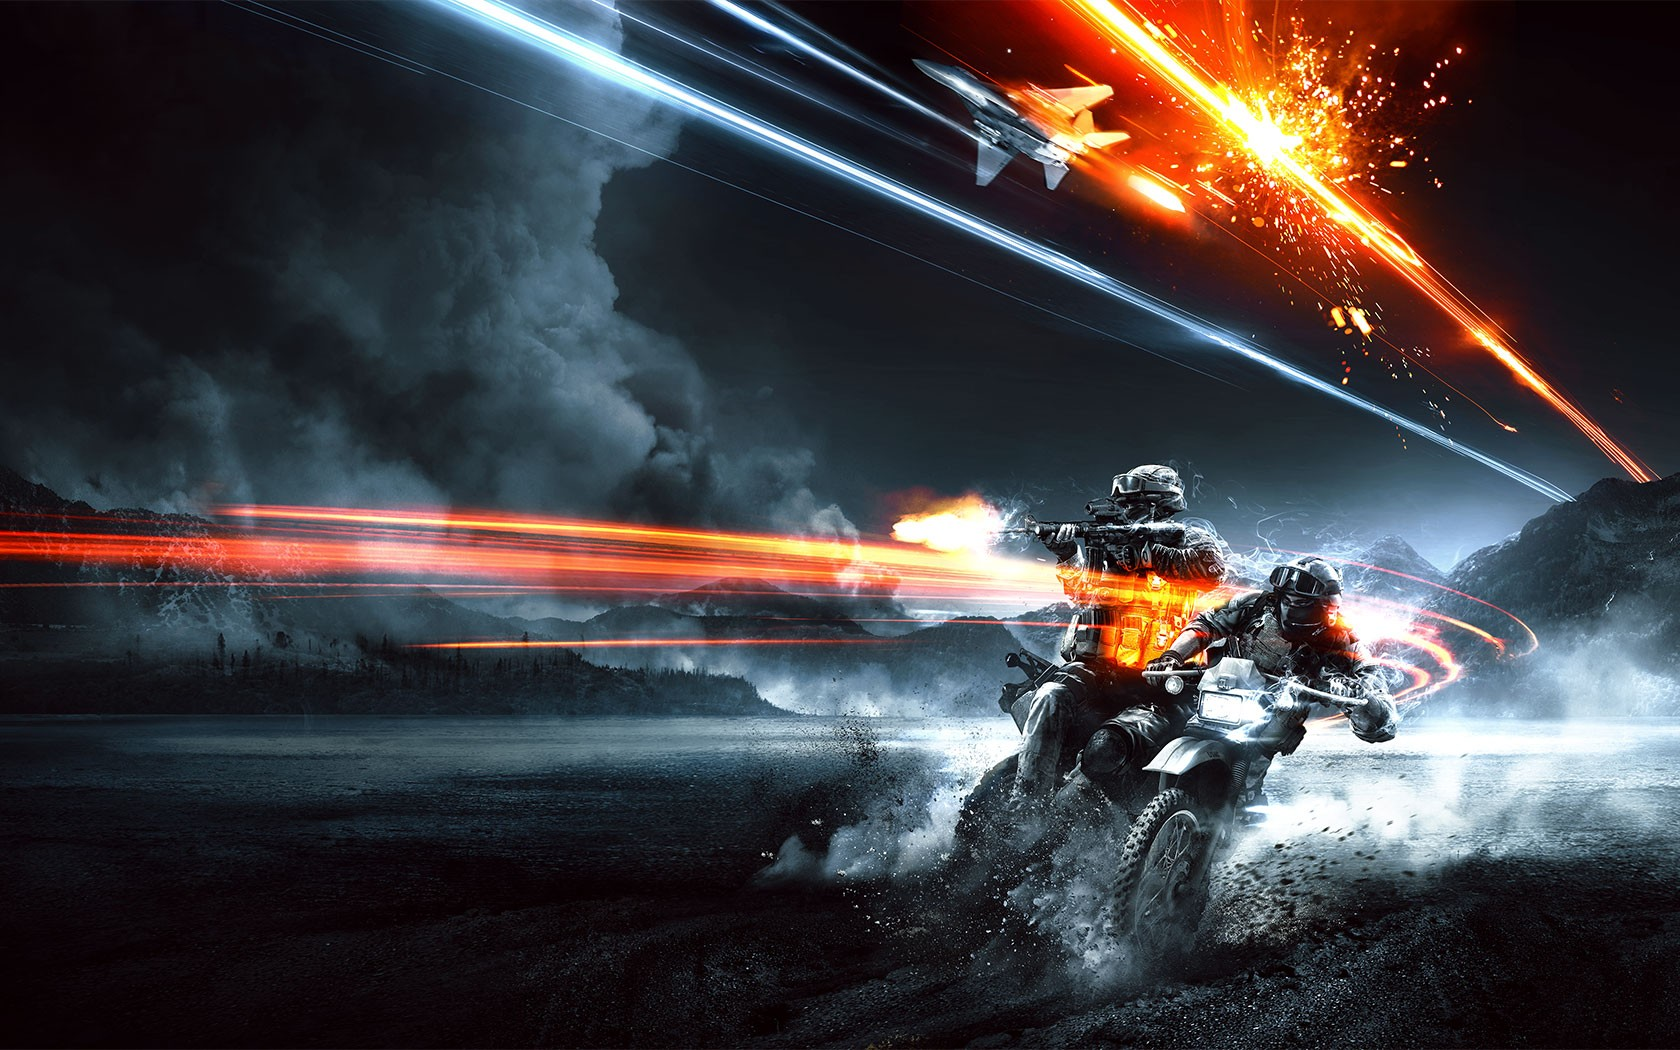 download Battlefield 3 shooting dirtbike game End Game 1680x1050